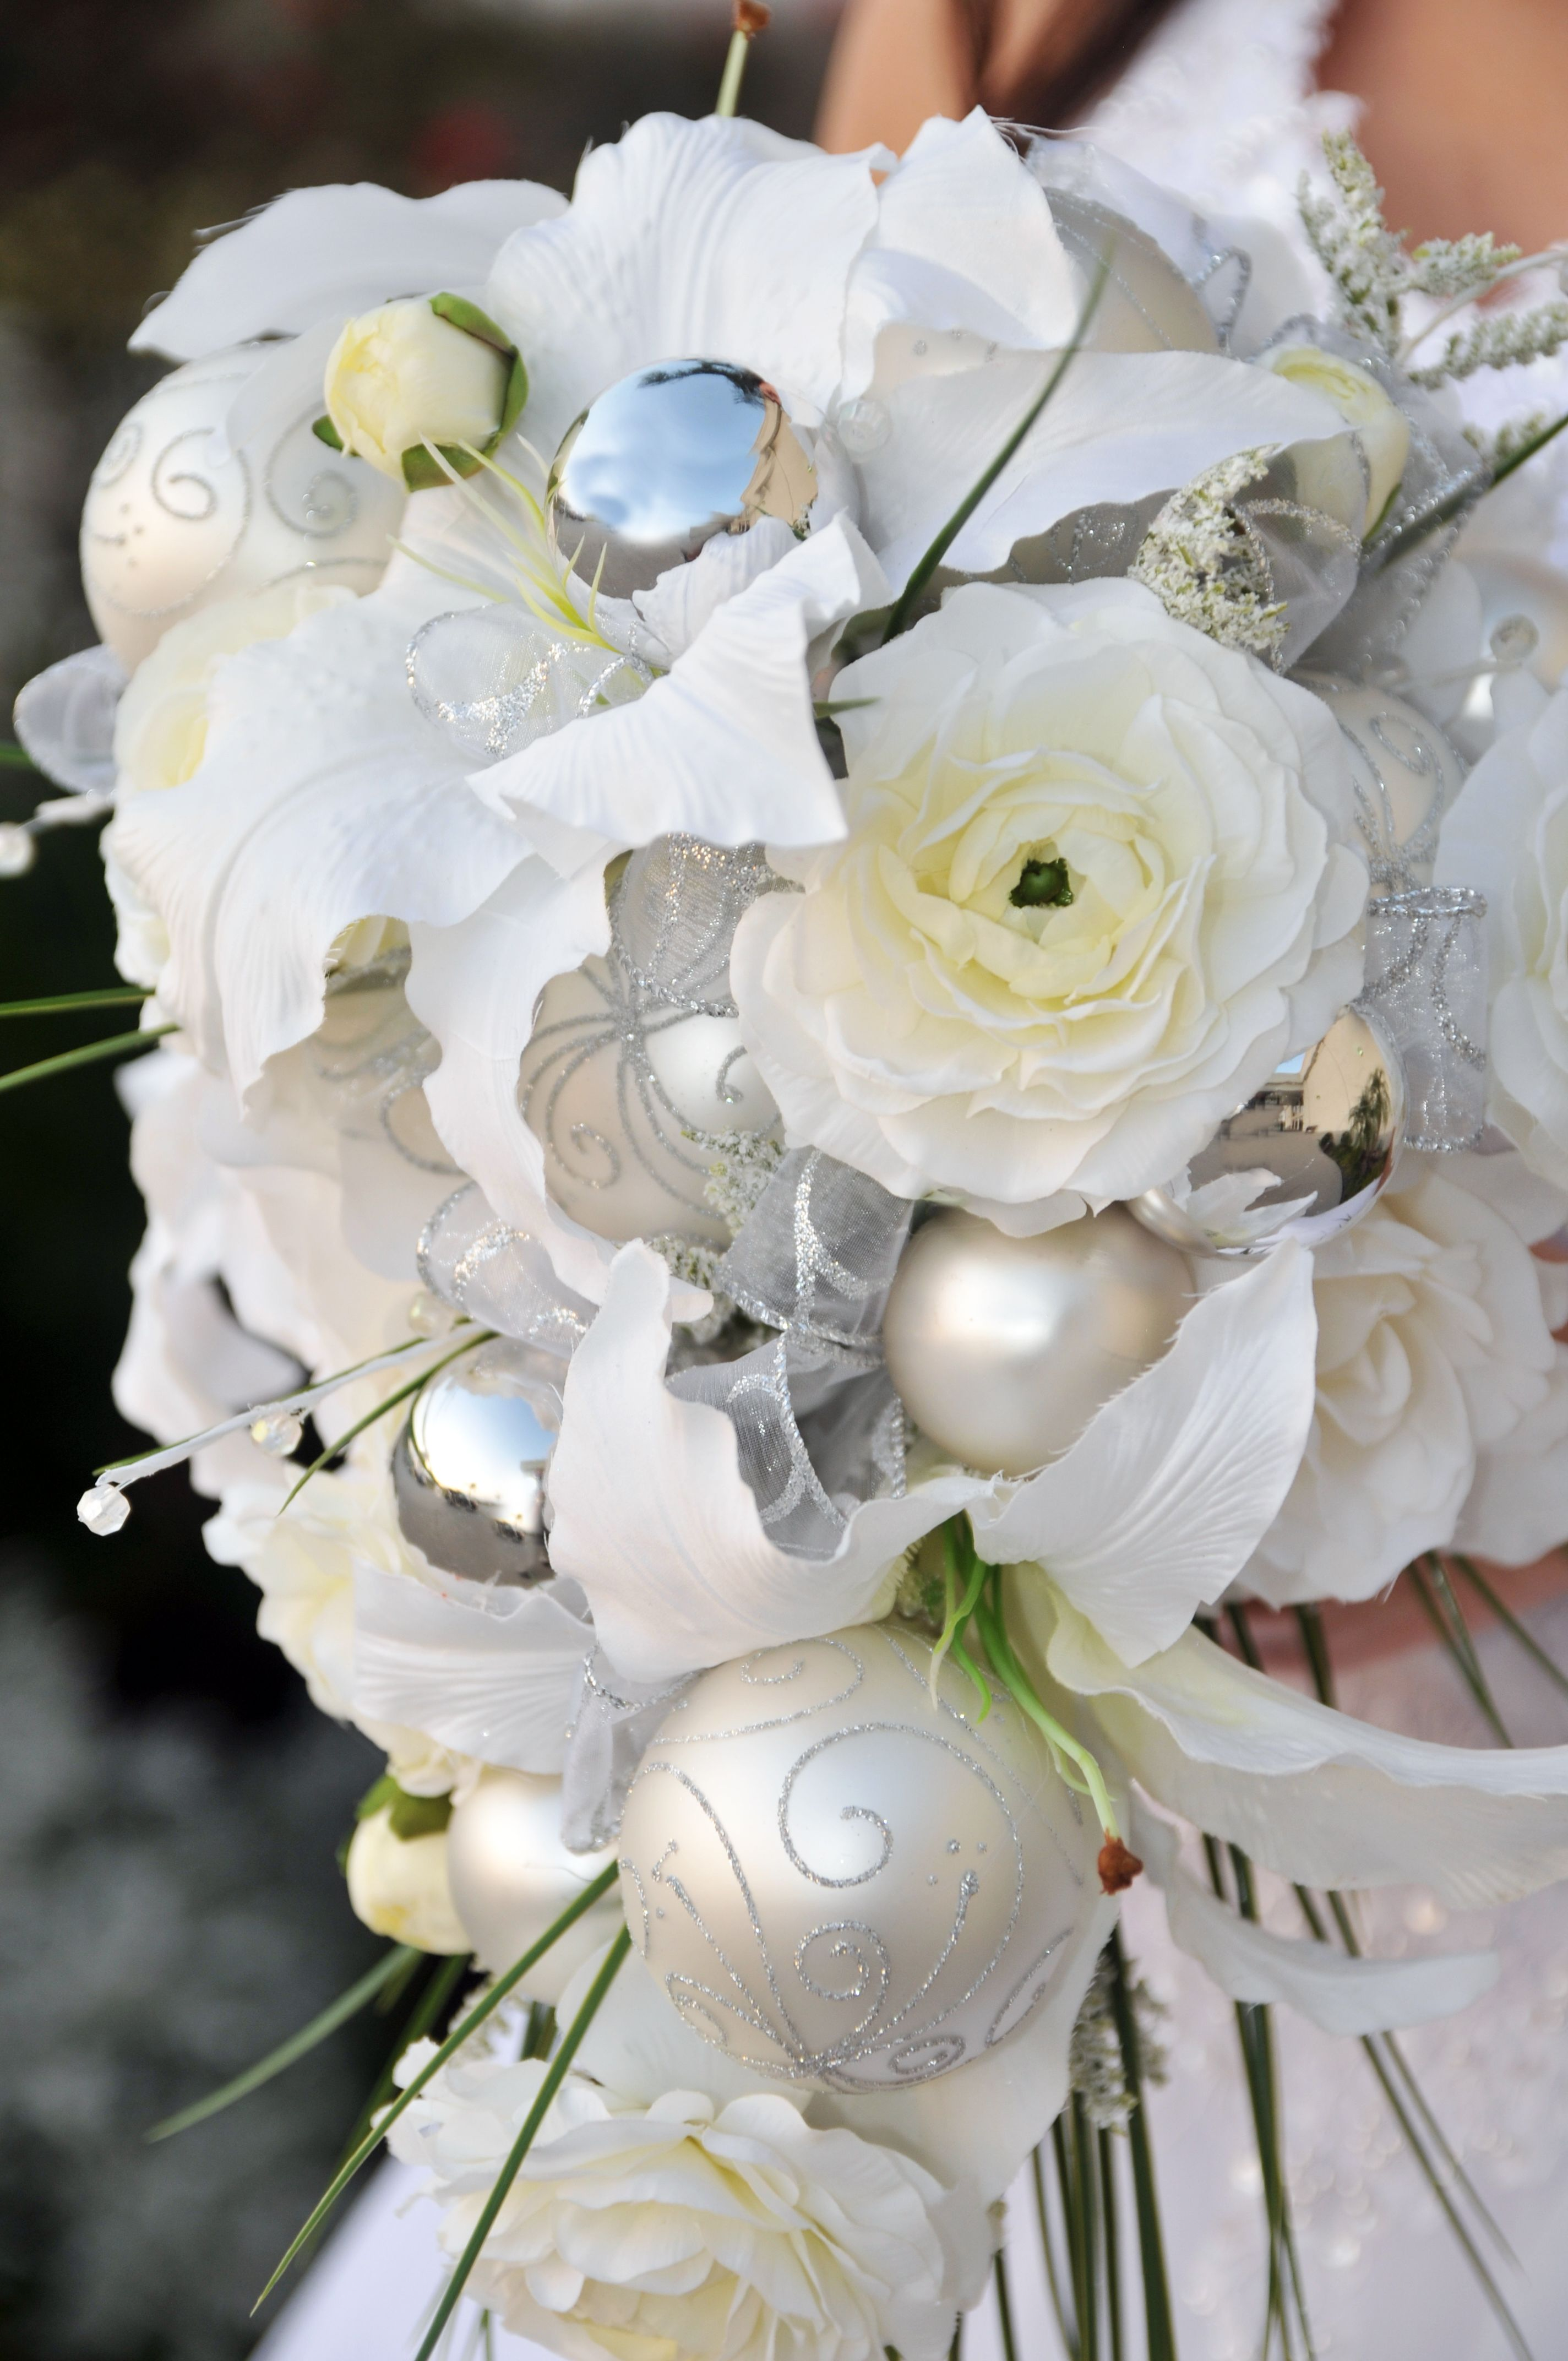 not this, but i like the idea of adding ornaments | wedding flowers ...